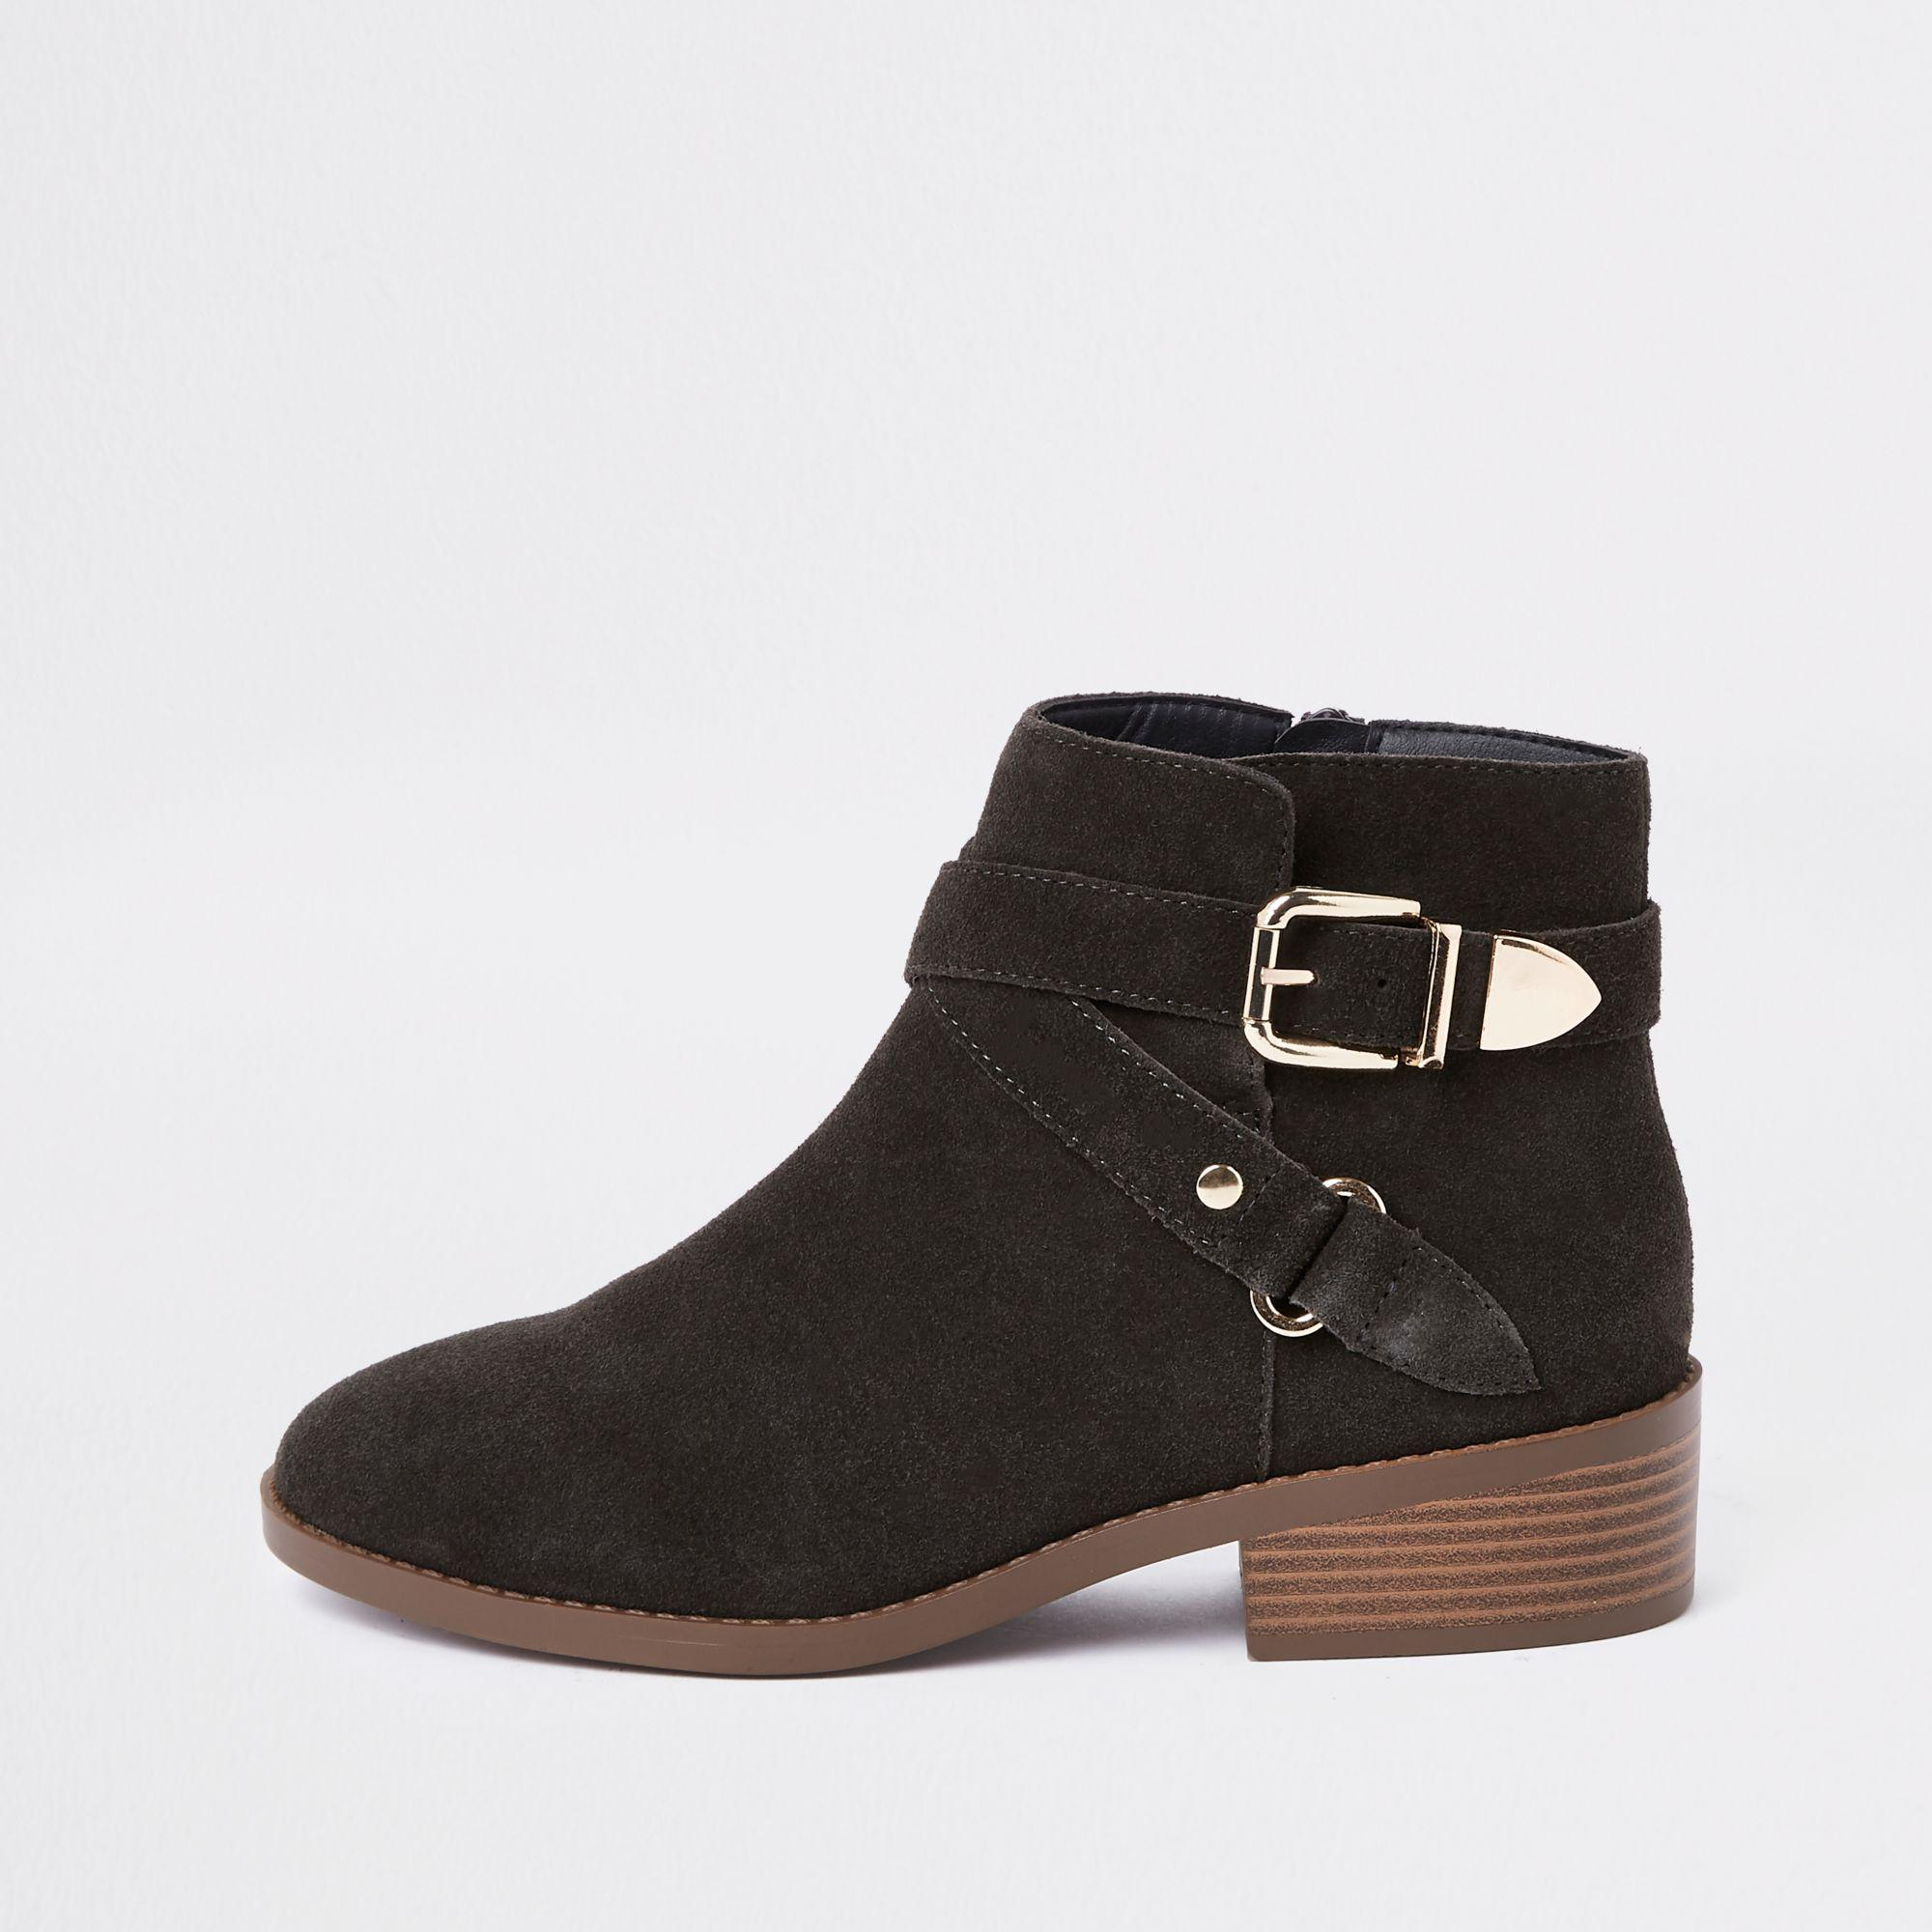 20a34384a4aa River Island Dark Suede Buckle Ankle Boots in Gray - Lyst